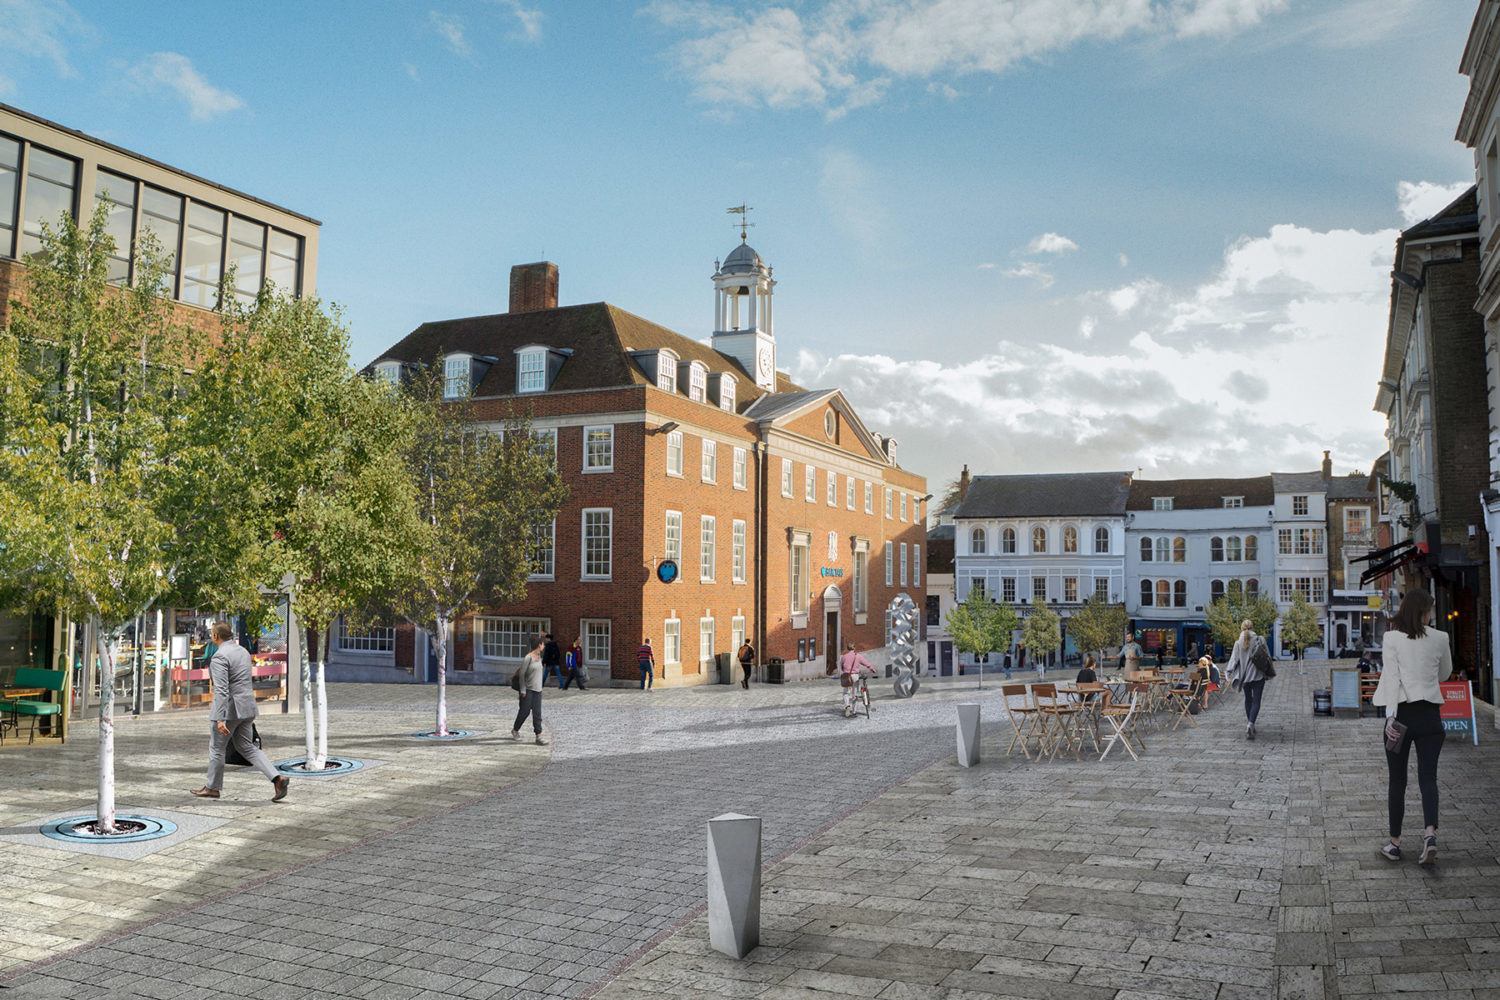 Top of Winchester highstreet Proposed carless